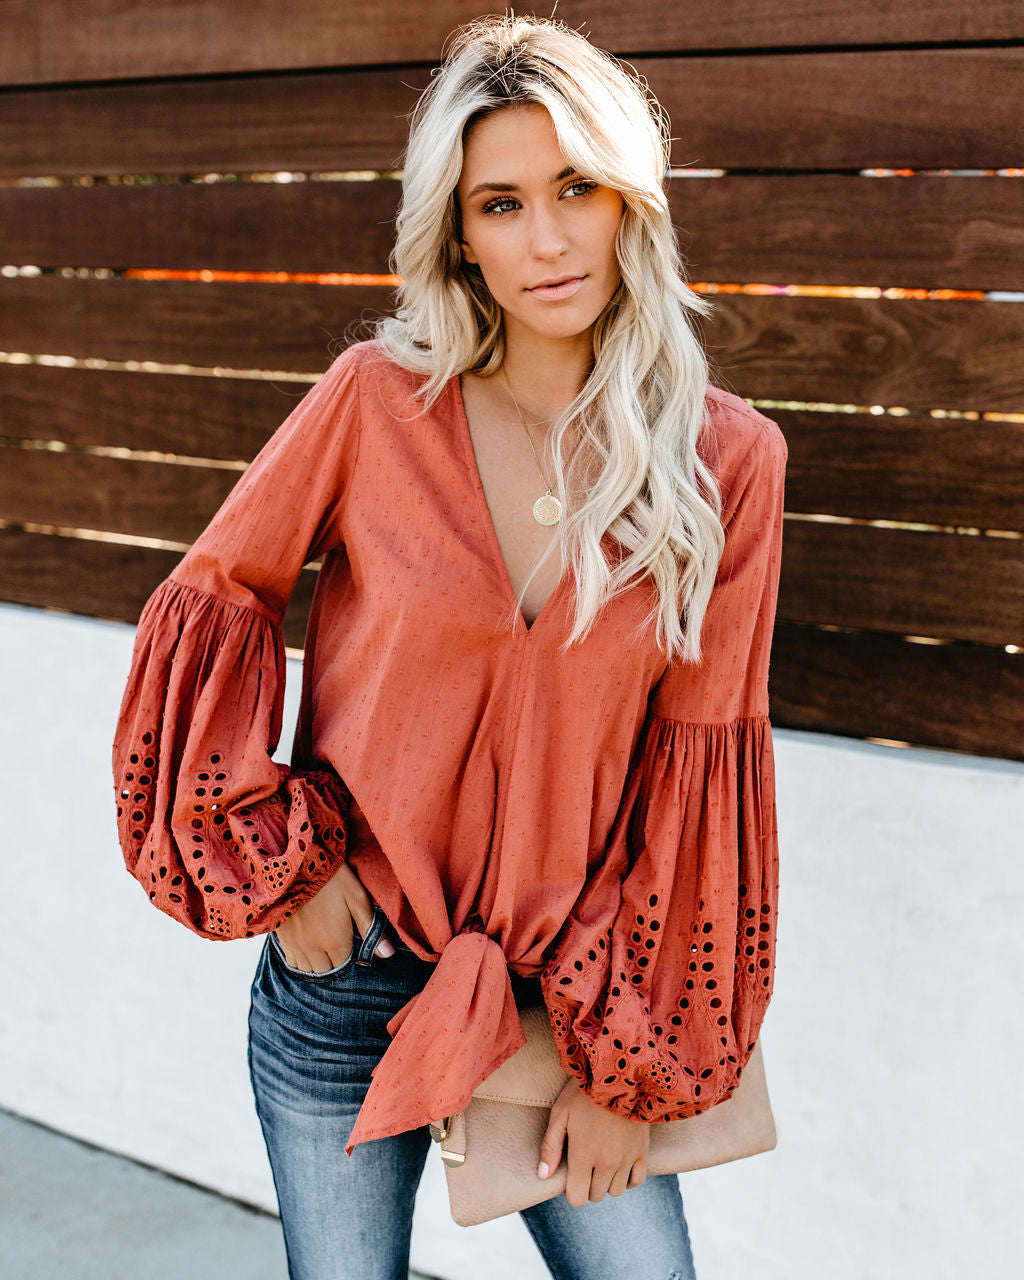 c21c558146d77 Detail Product. ← Home - BOHO BABE - Rhapsody Cotton Balloon Sleeve Tie Top  - Terracotta